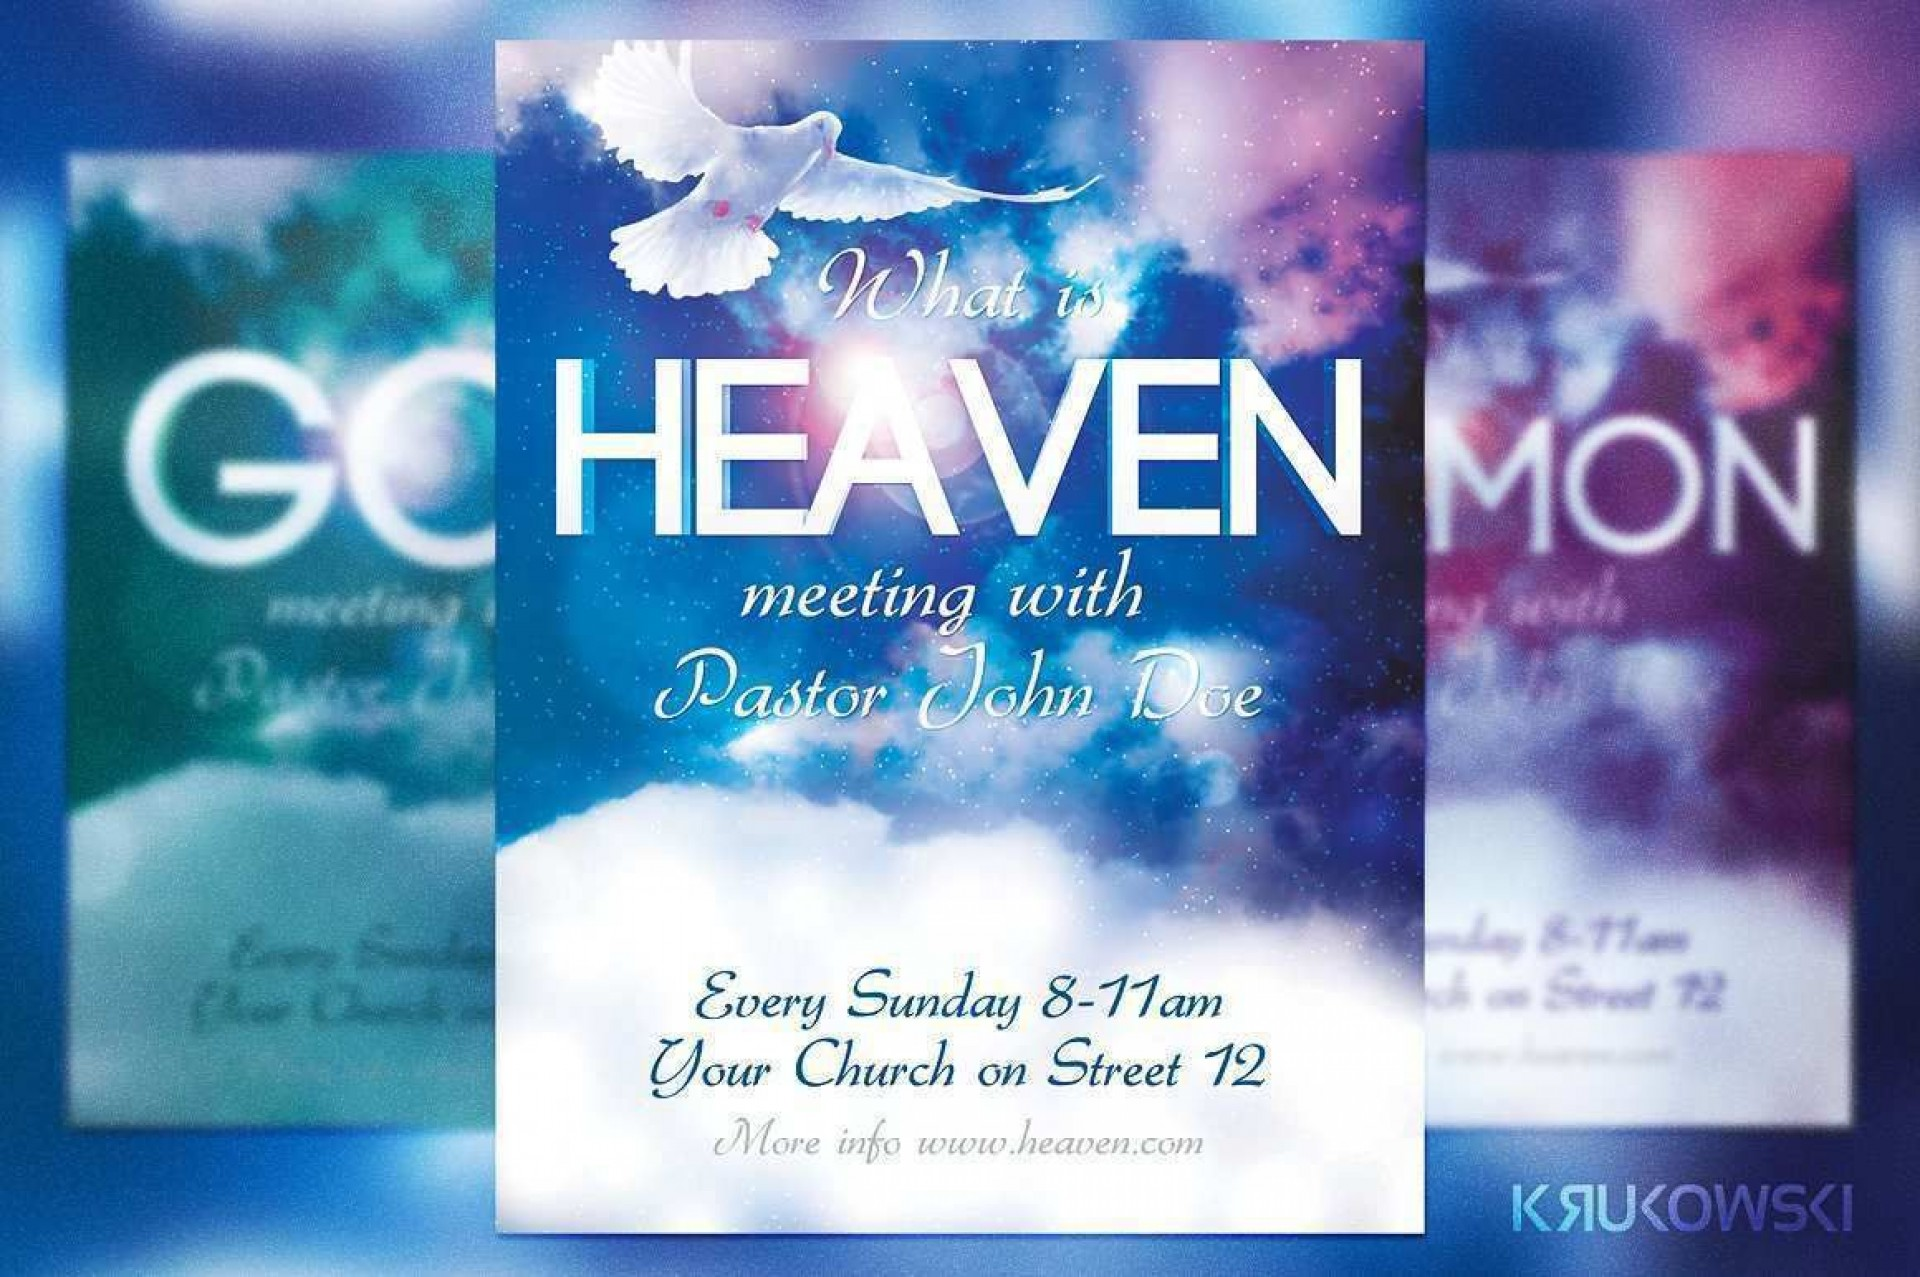 002 Awful Church Flyer Template Free Design  Easter Anniversary Conference Psd1920